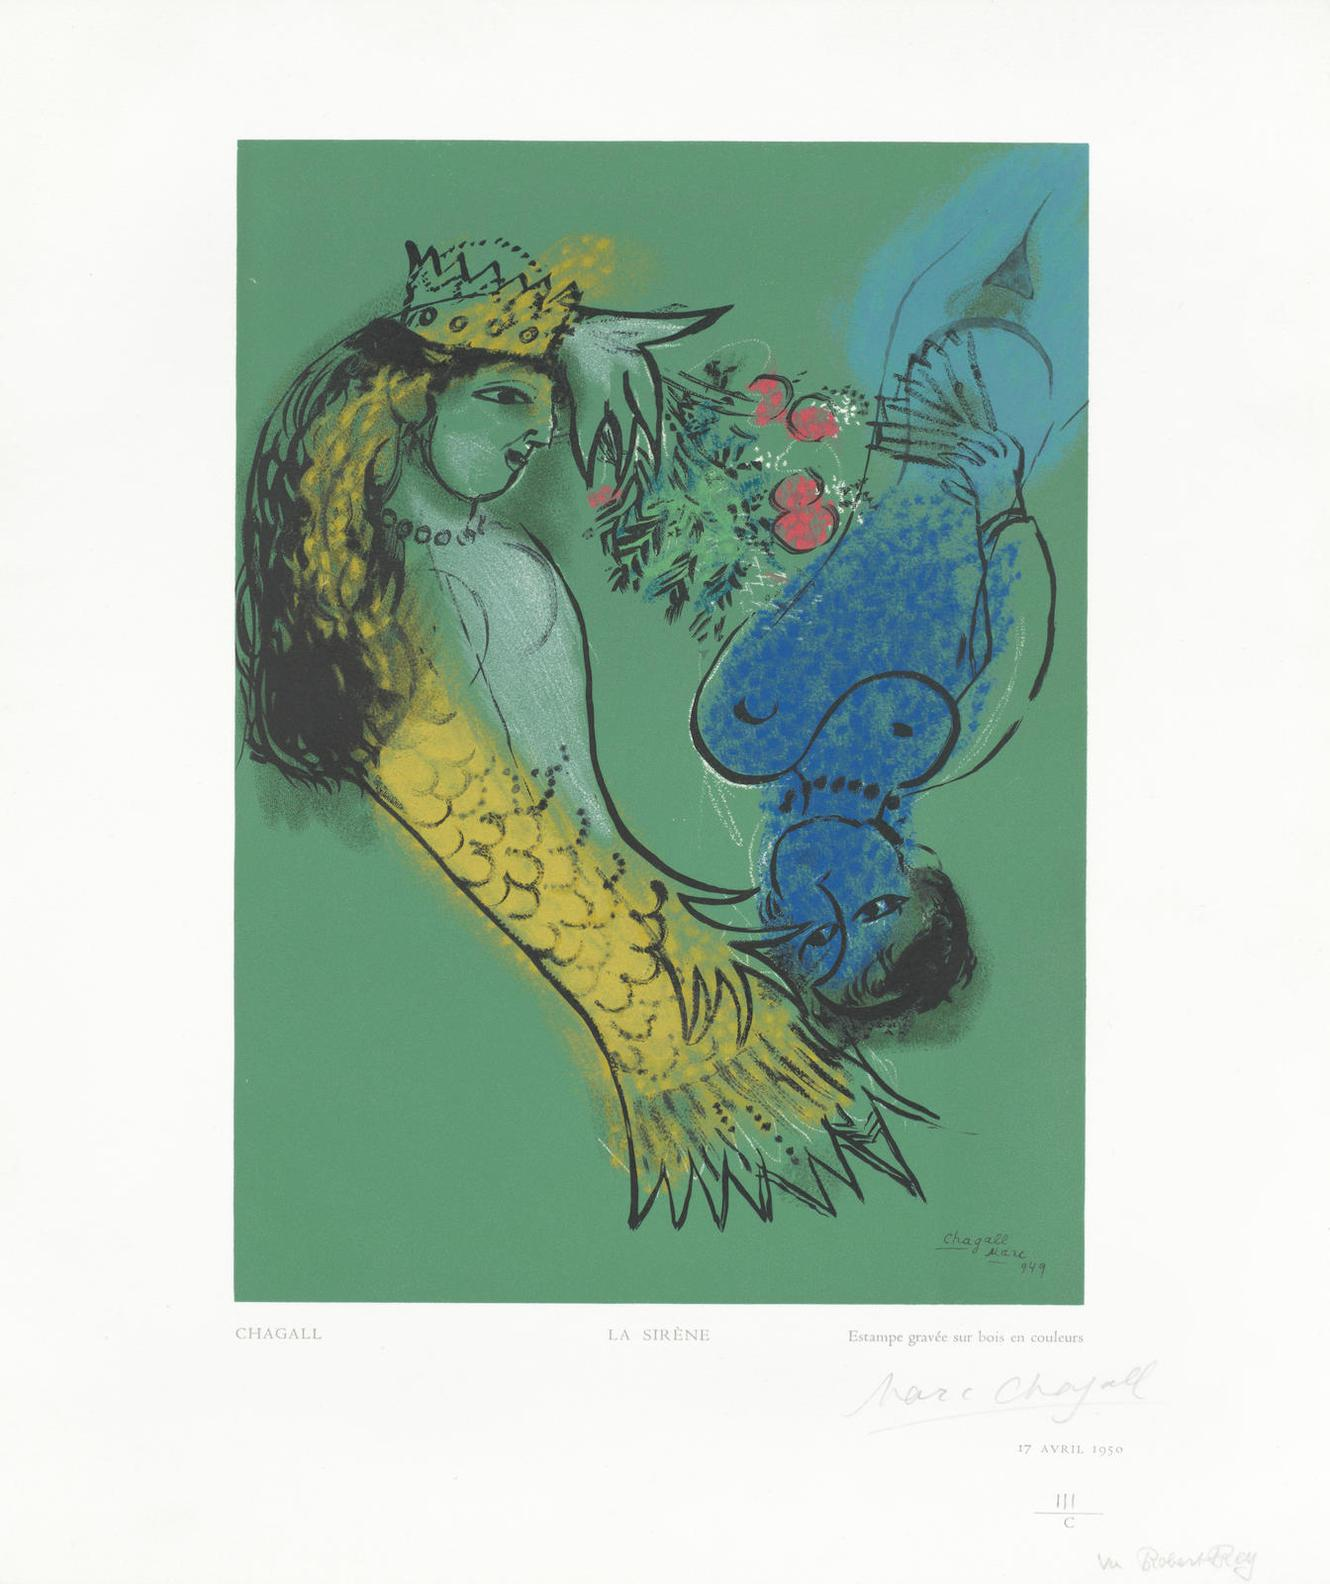 Marc Chagall-After Marc Chagall - La Sirene-1950